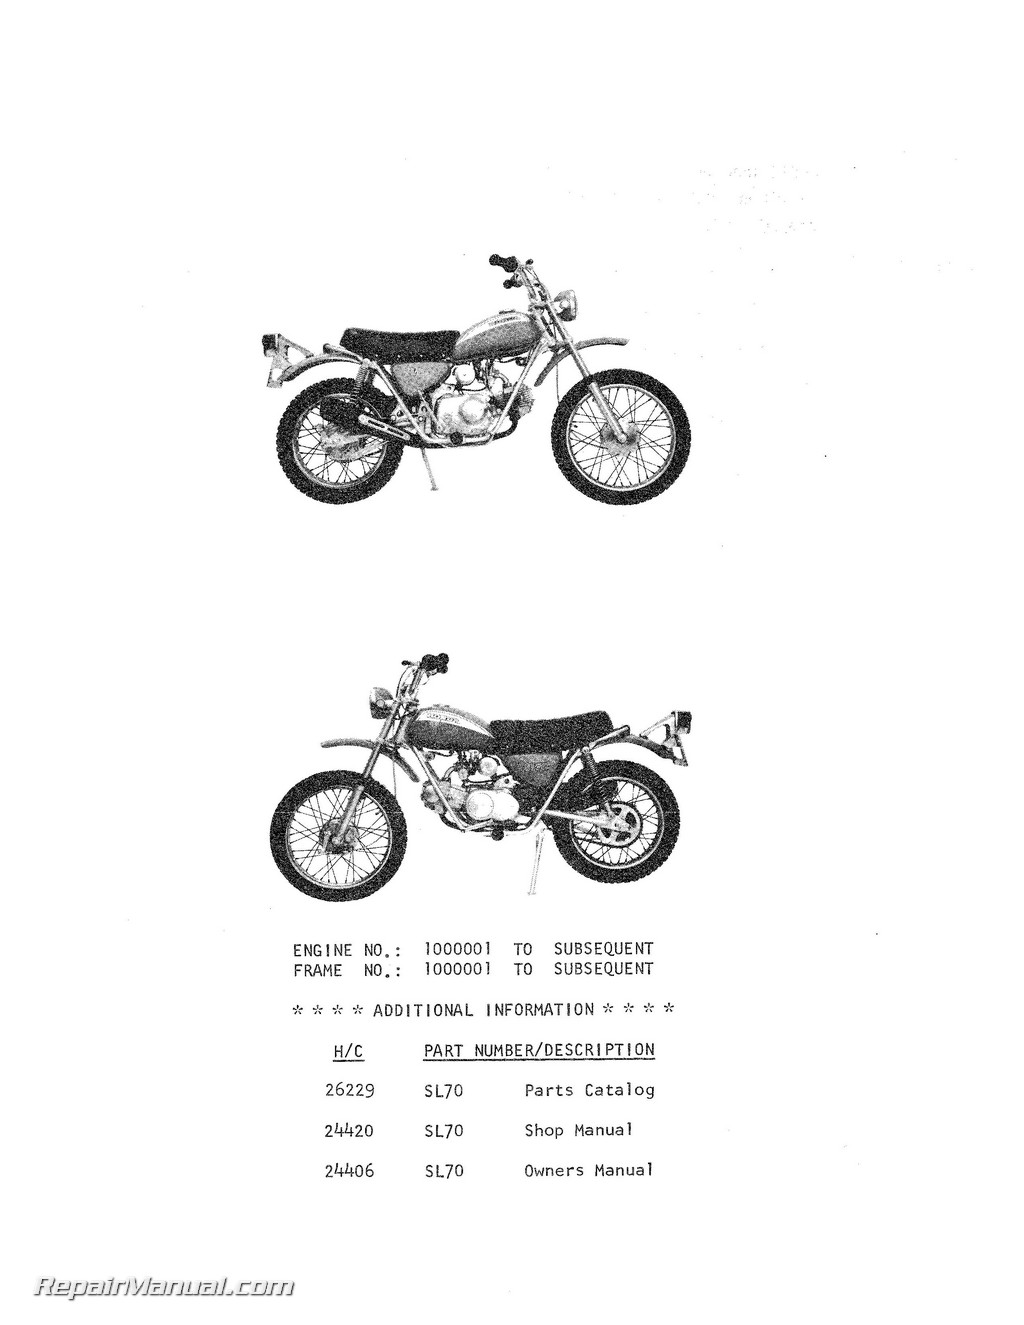 Honda Motorcycle Parts Catalog